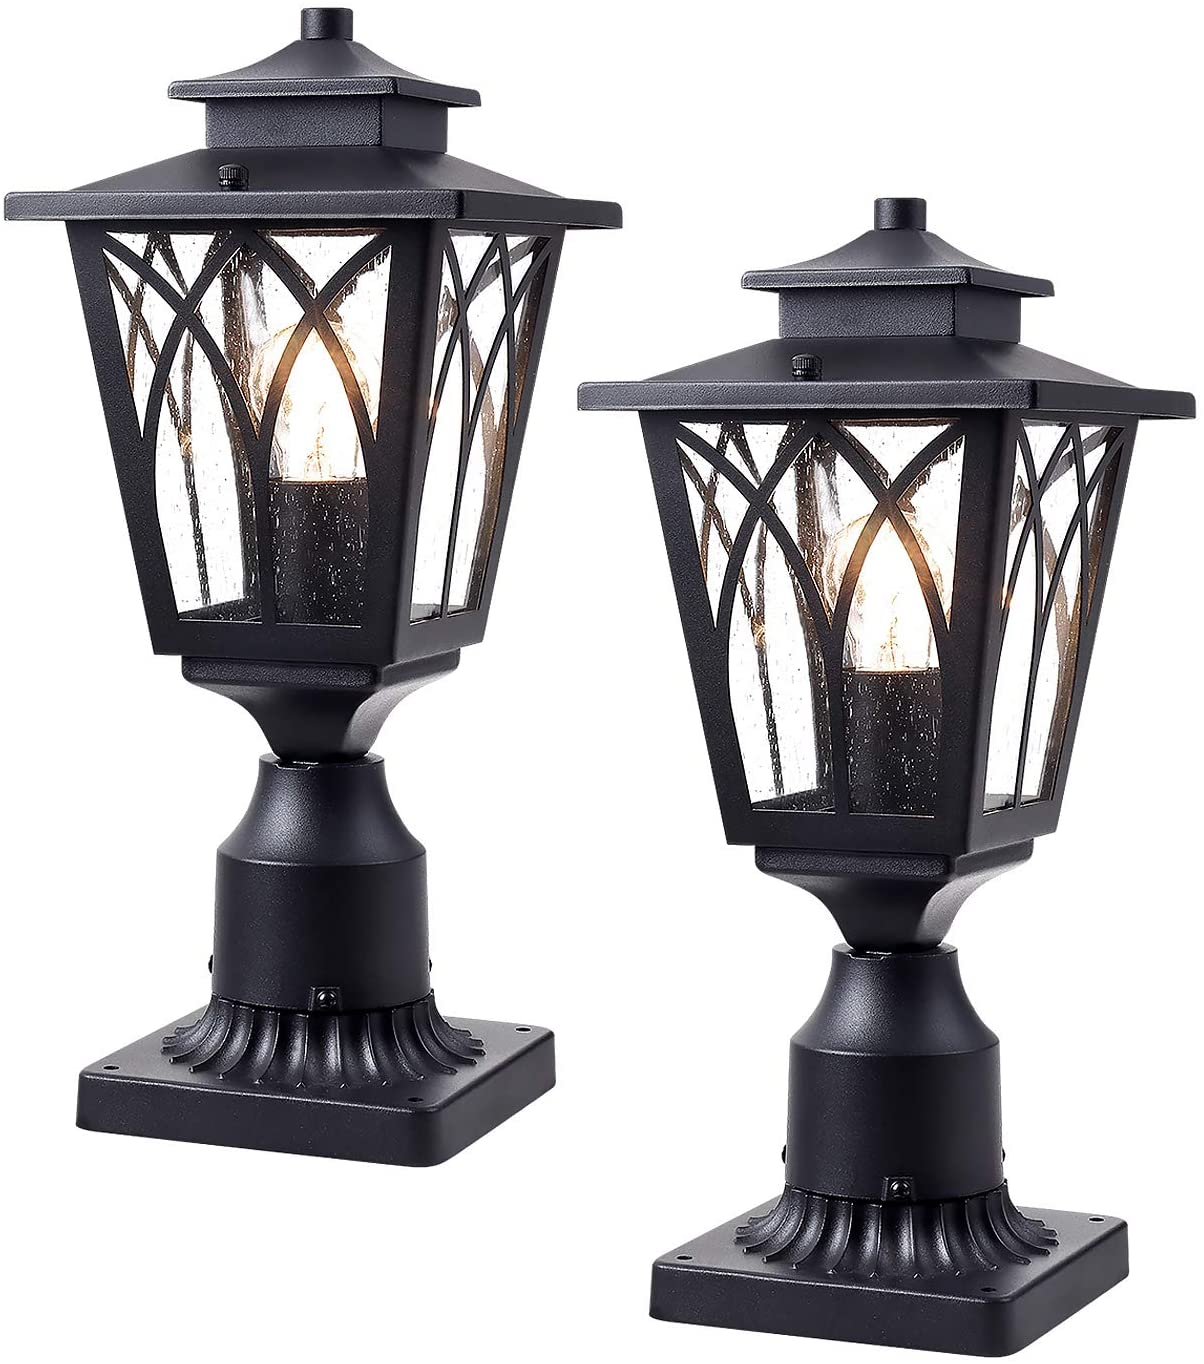 JAZAVA Outdoor Post Light Fixtures, Tulip Exterior Post Lantern Street Light with 3-Inch Pier Mount Base One-Light for House Patio Entryway, Black Finish with Clear Seeded Glass, Set of 2